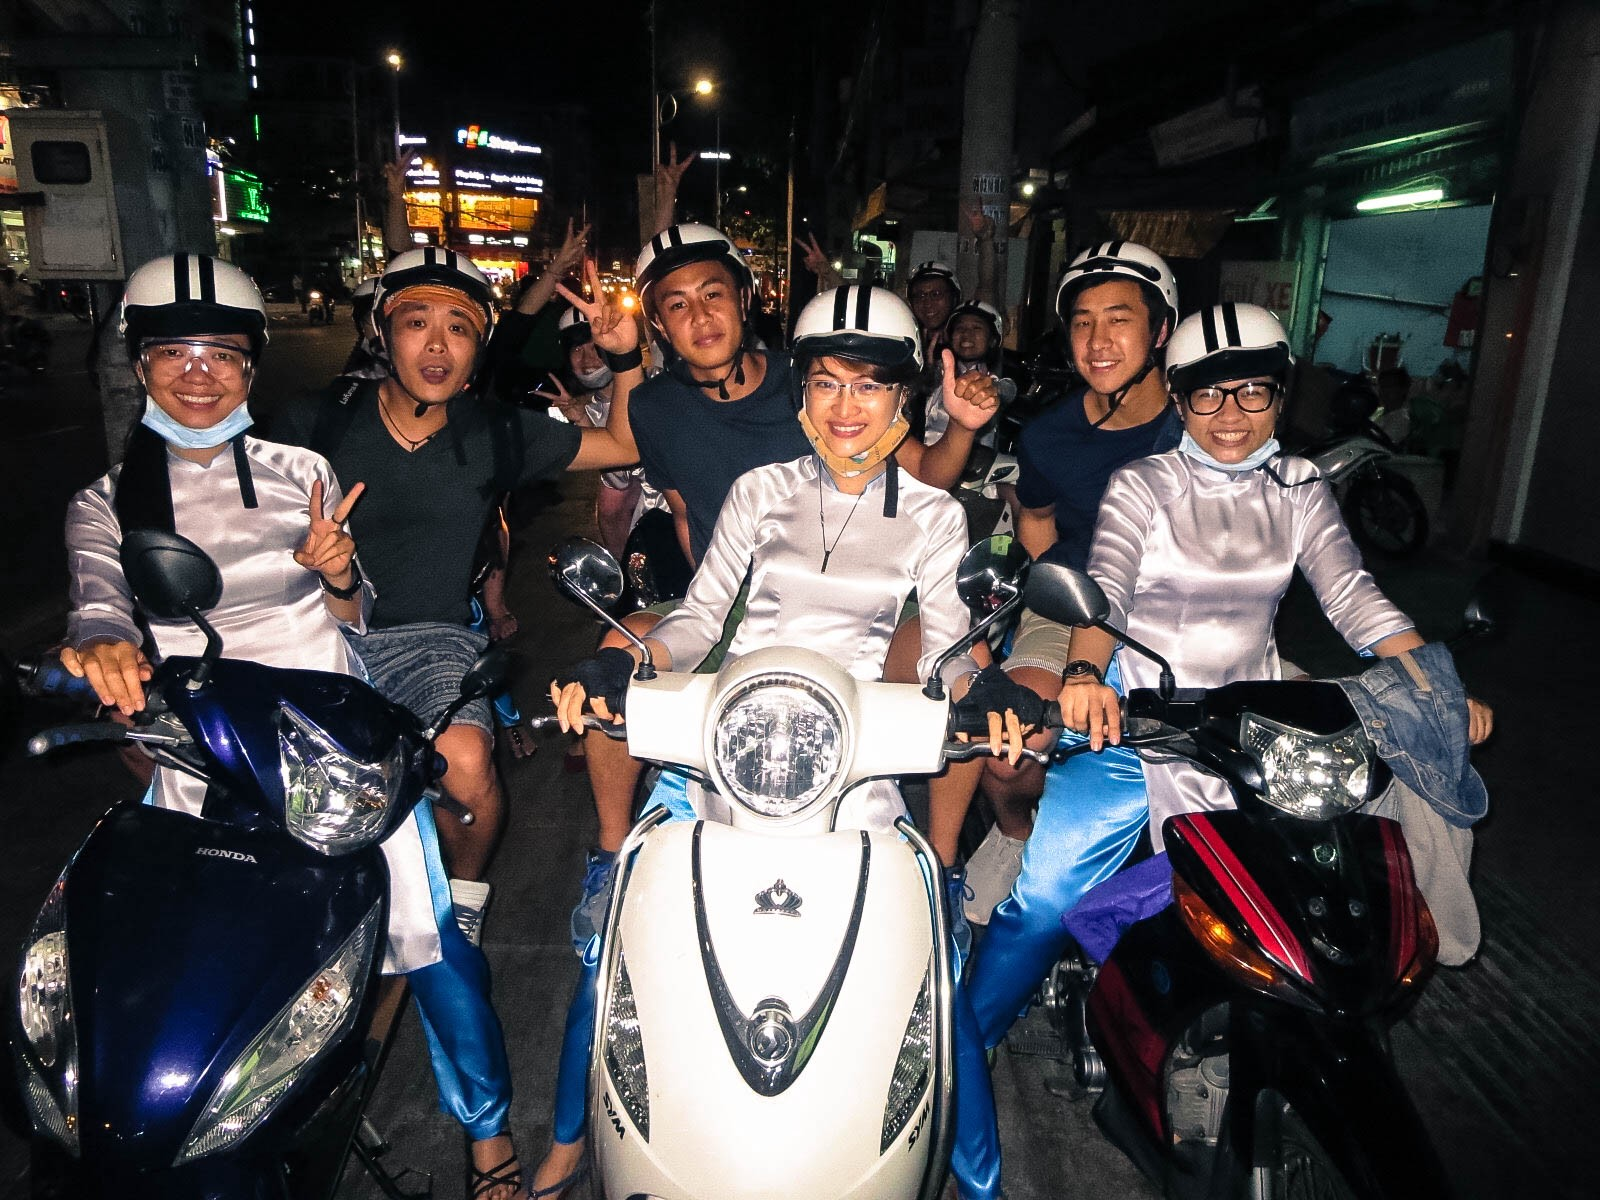 Motorbike night tour